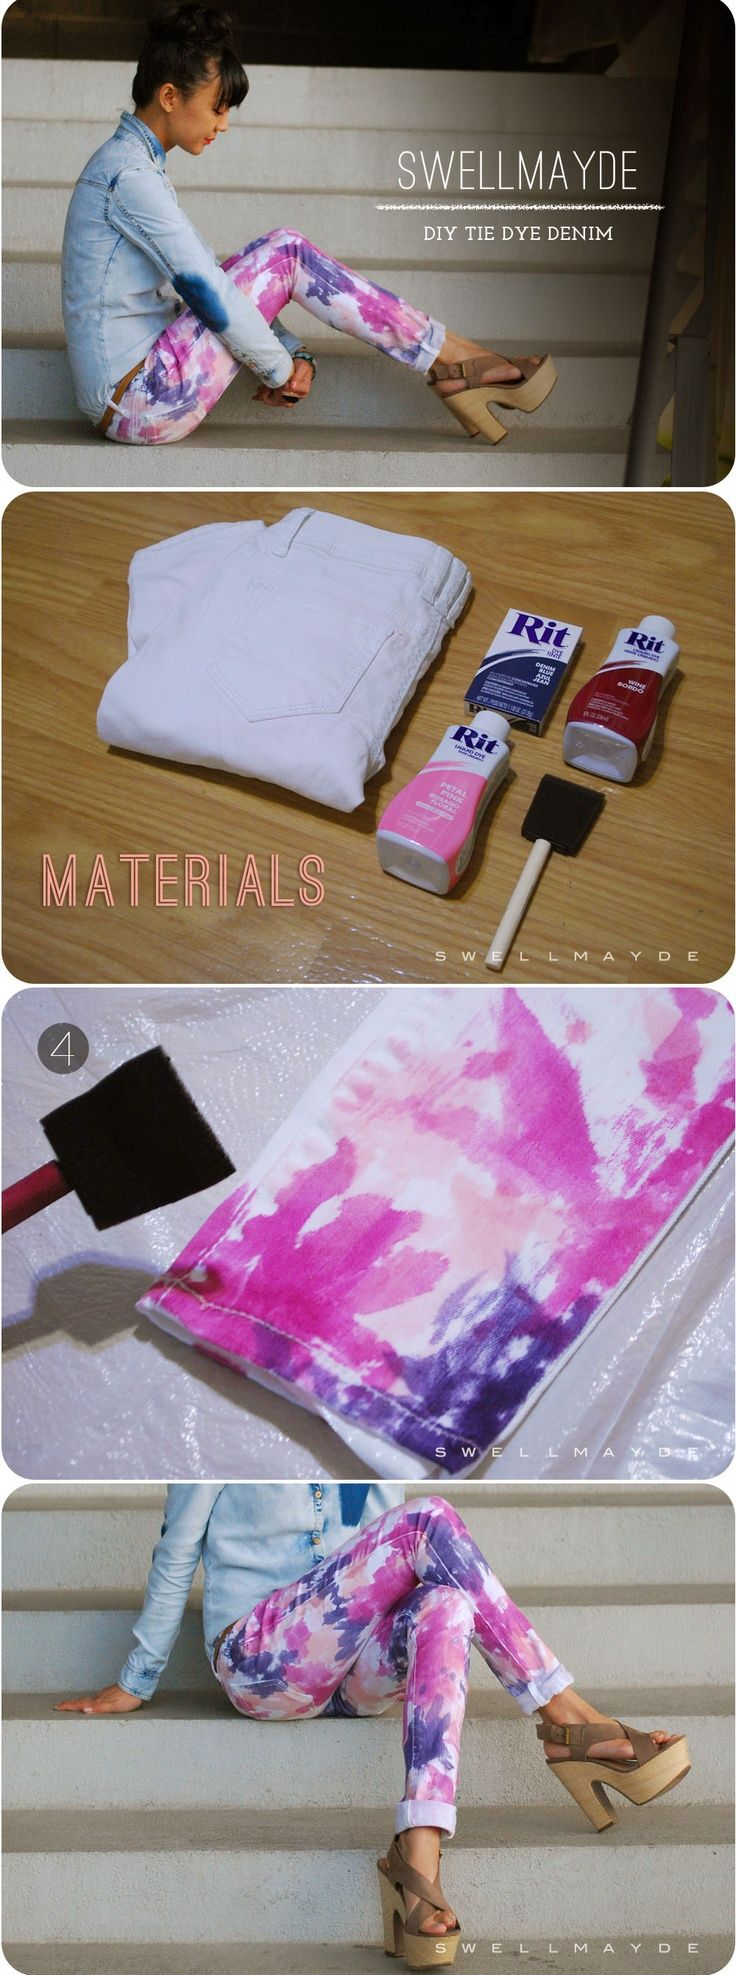 DIY Tie Dye Jeans: Dyes Denim, Diy'S Ties Dyes Jeans, Ties Dyes Jeans Diy'S, Diy'S Dyes Jeans, Tie Dye Jeans, Diy'S The Dyes Jeans, Diy'S Clothing, Color Pants, Crafts